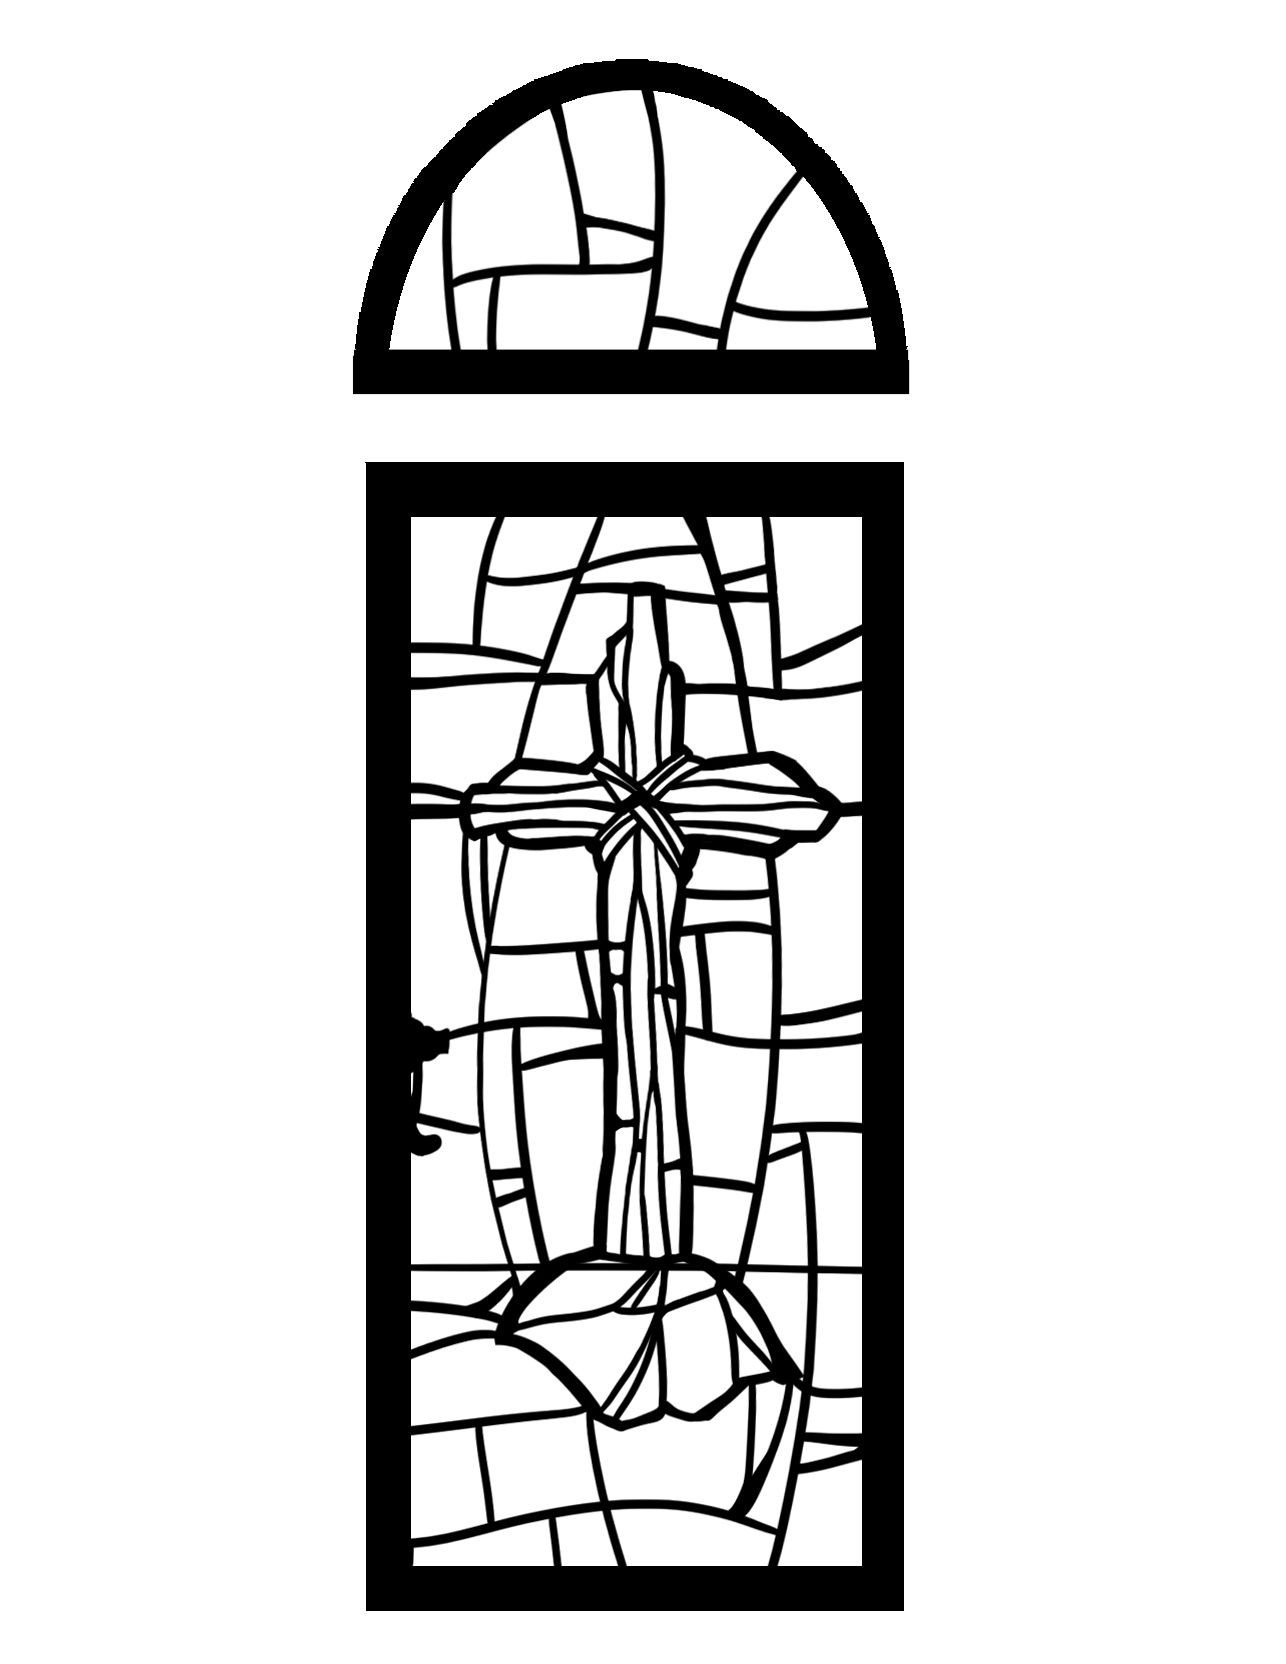 stained glass religious coloring pages - photo#23